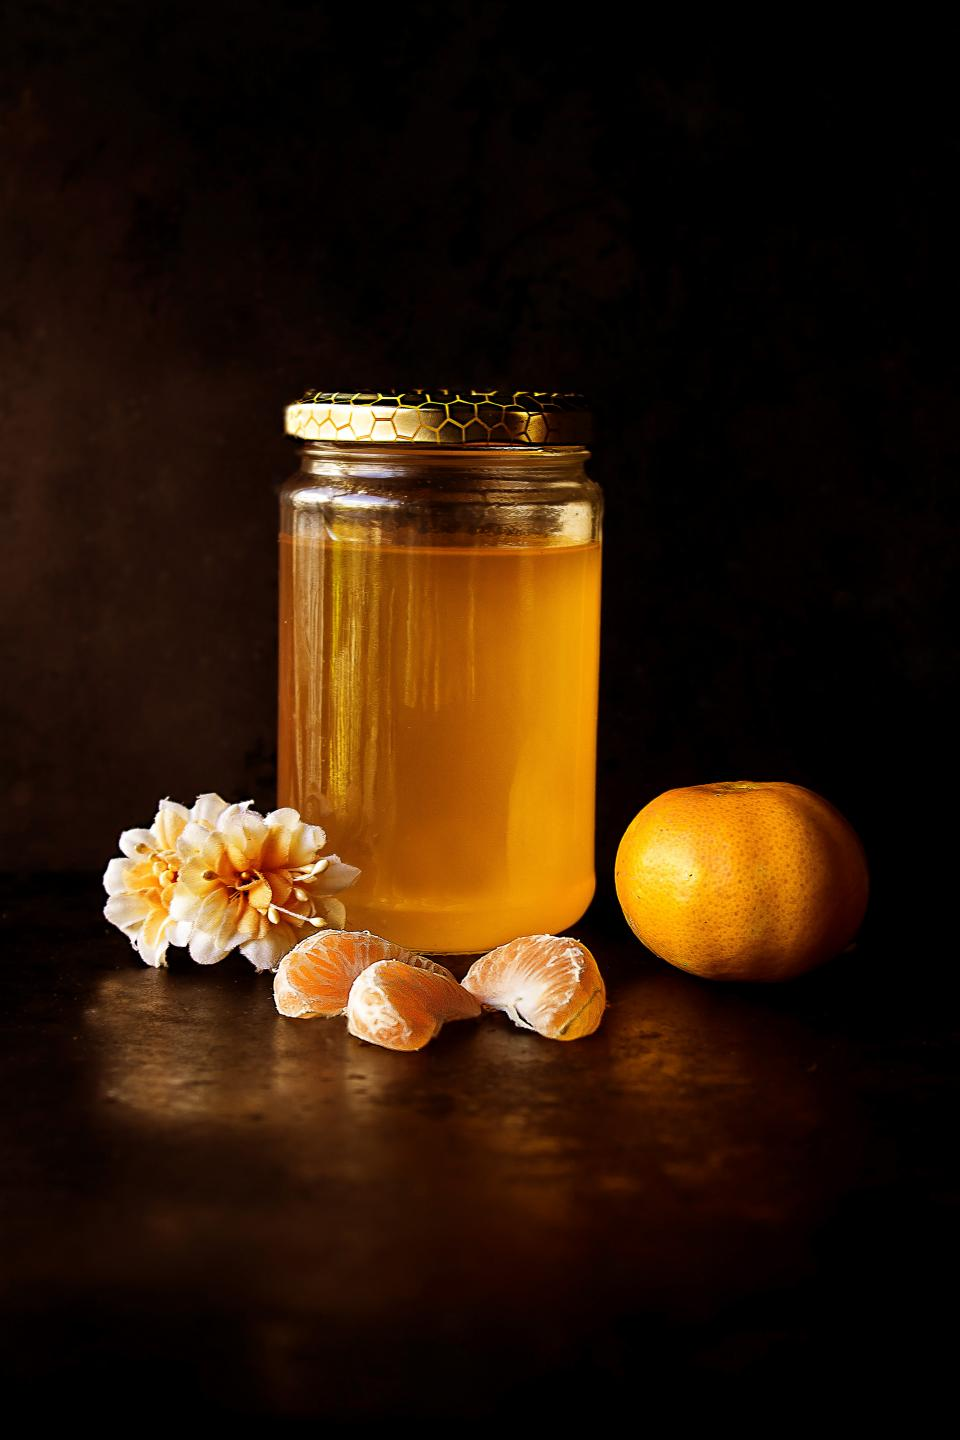 food honey orange jar flowers reflection styling orange photography